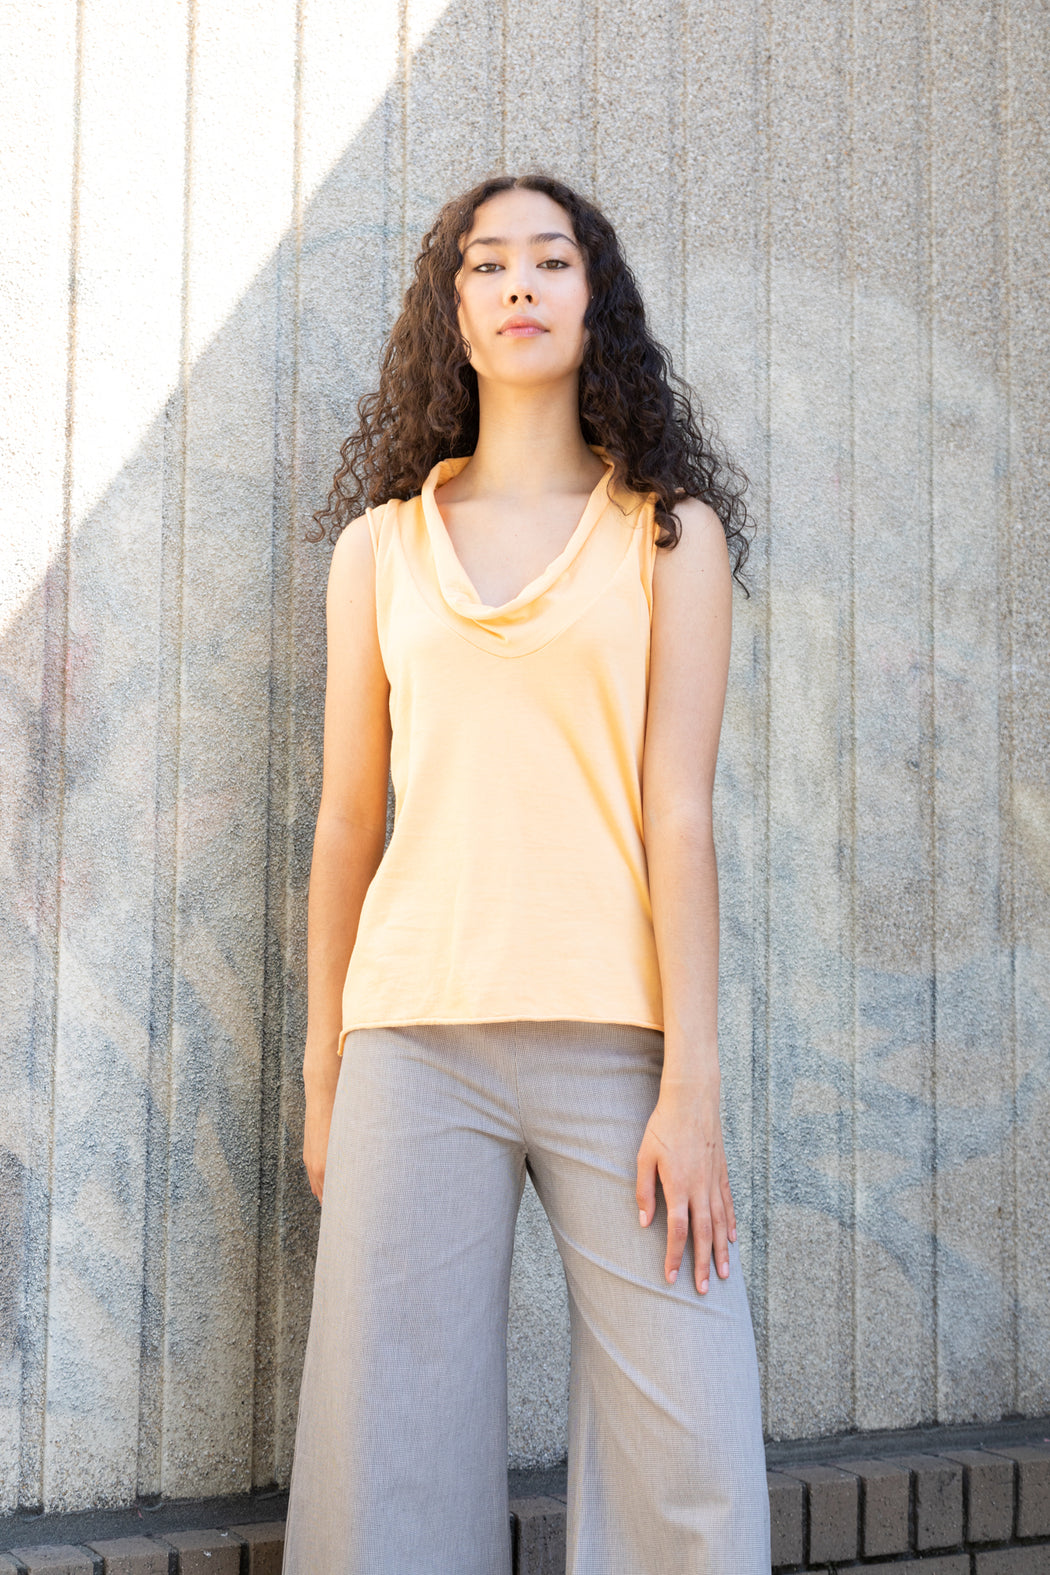 Photo of a lightweight, scoop, cowl neck t-shirt composed of 100% organic cotton jersey in a soft orange color.